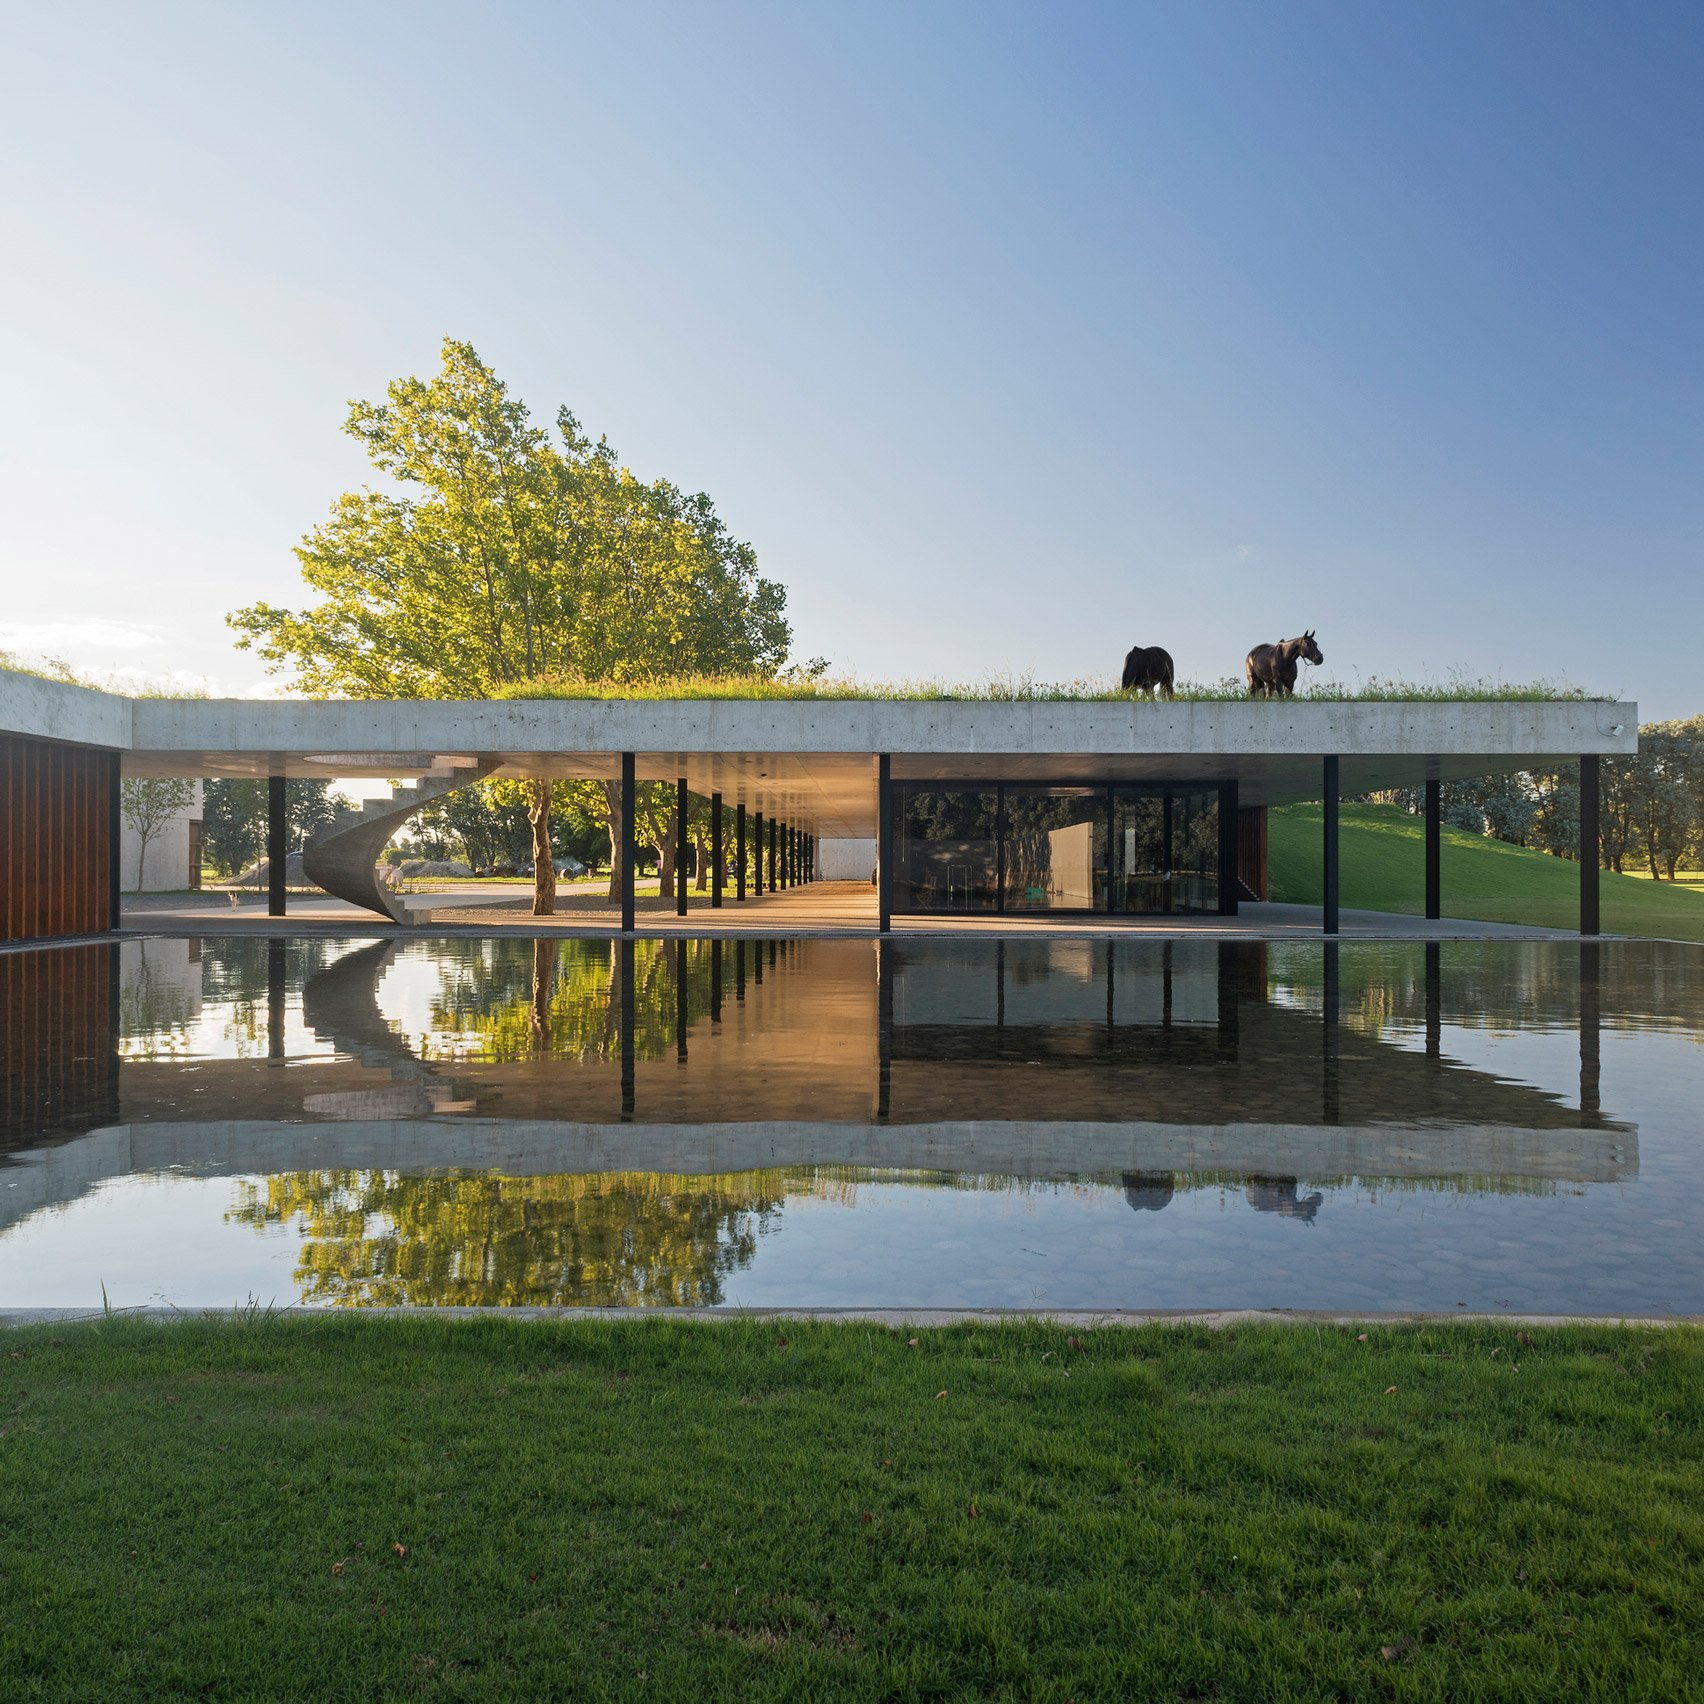 Polo Stables By Estudio Ramos Features Grassy Roof For Horses To Graze